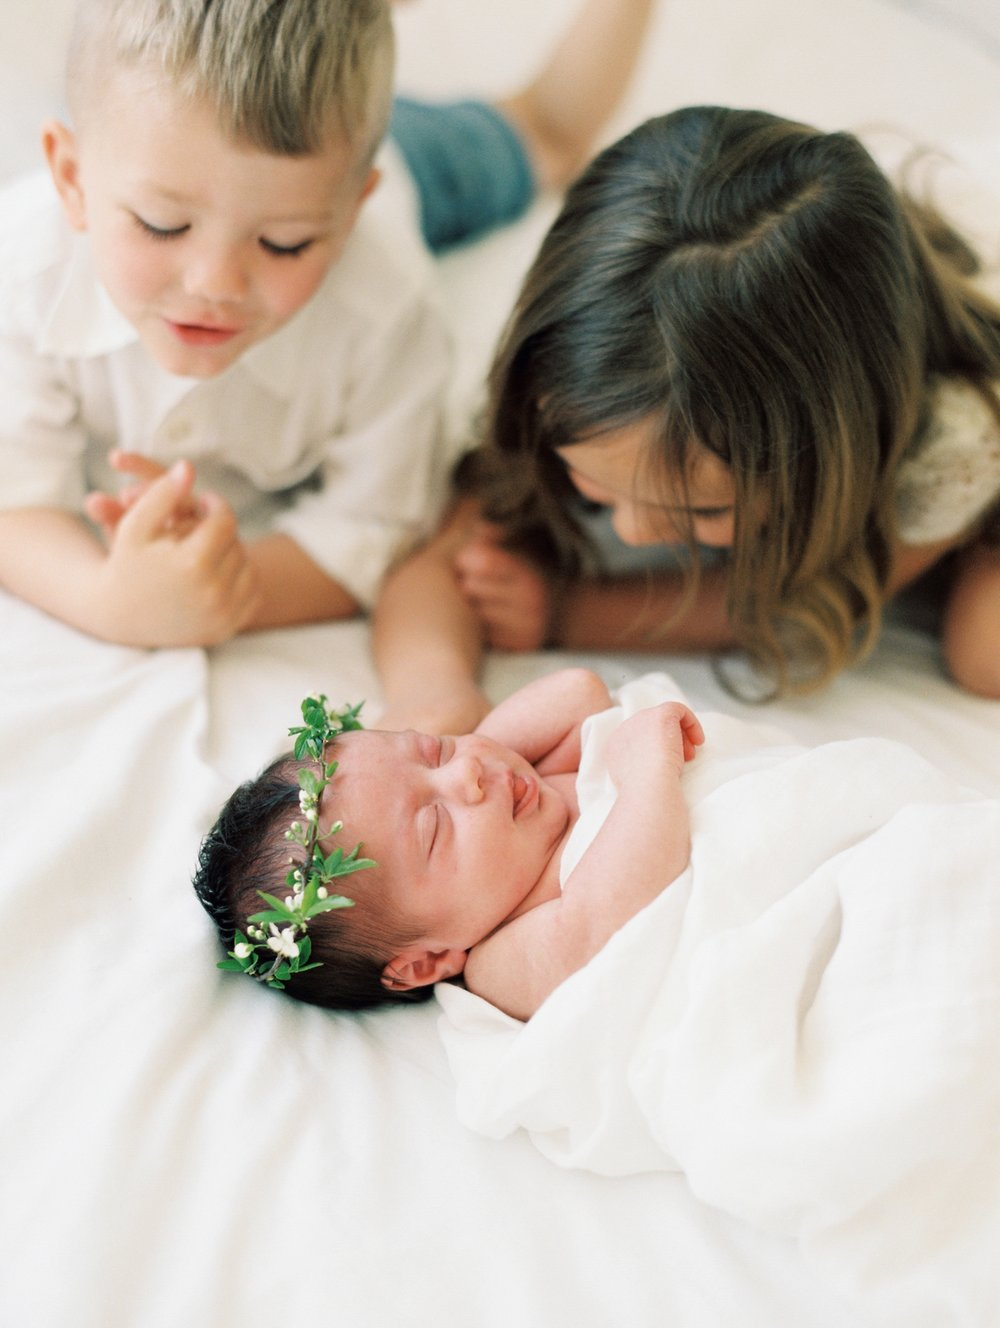 babynora_greenapplephotography_0013.jpg